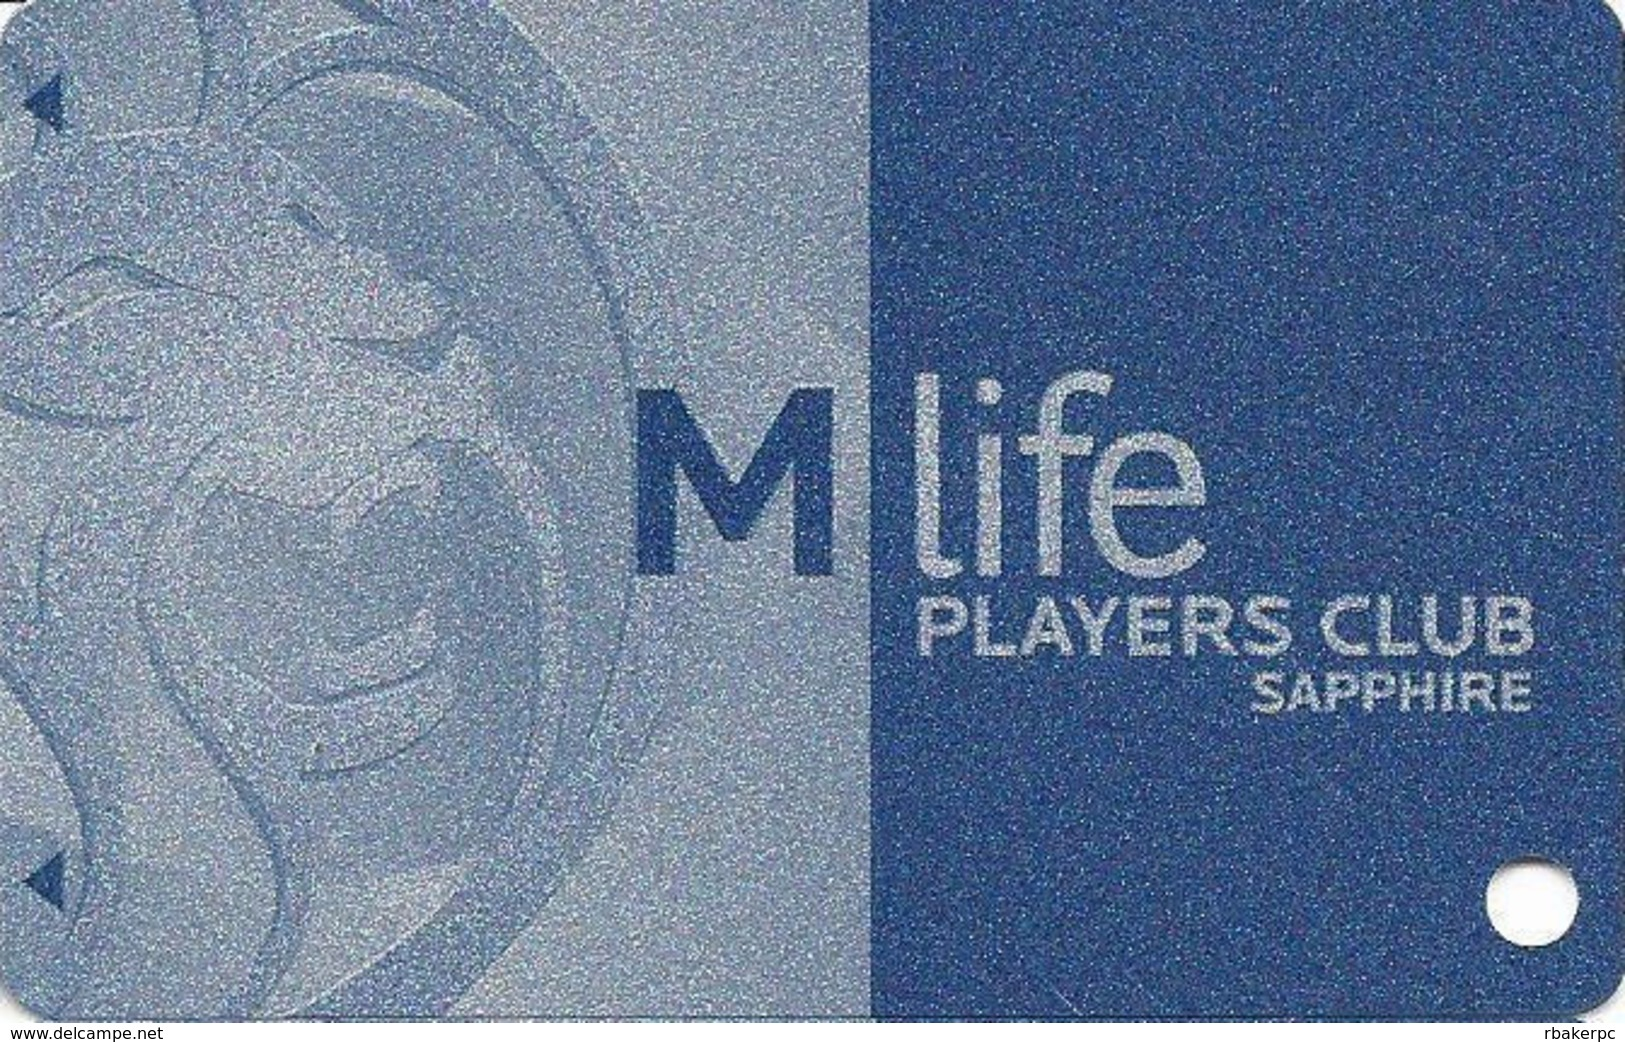 MGM Casinos - Multiple Locations - BLANK MLife Players Club Sapphire Slot Card - Casino Cards